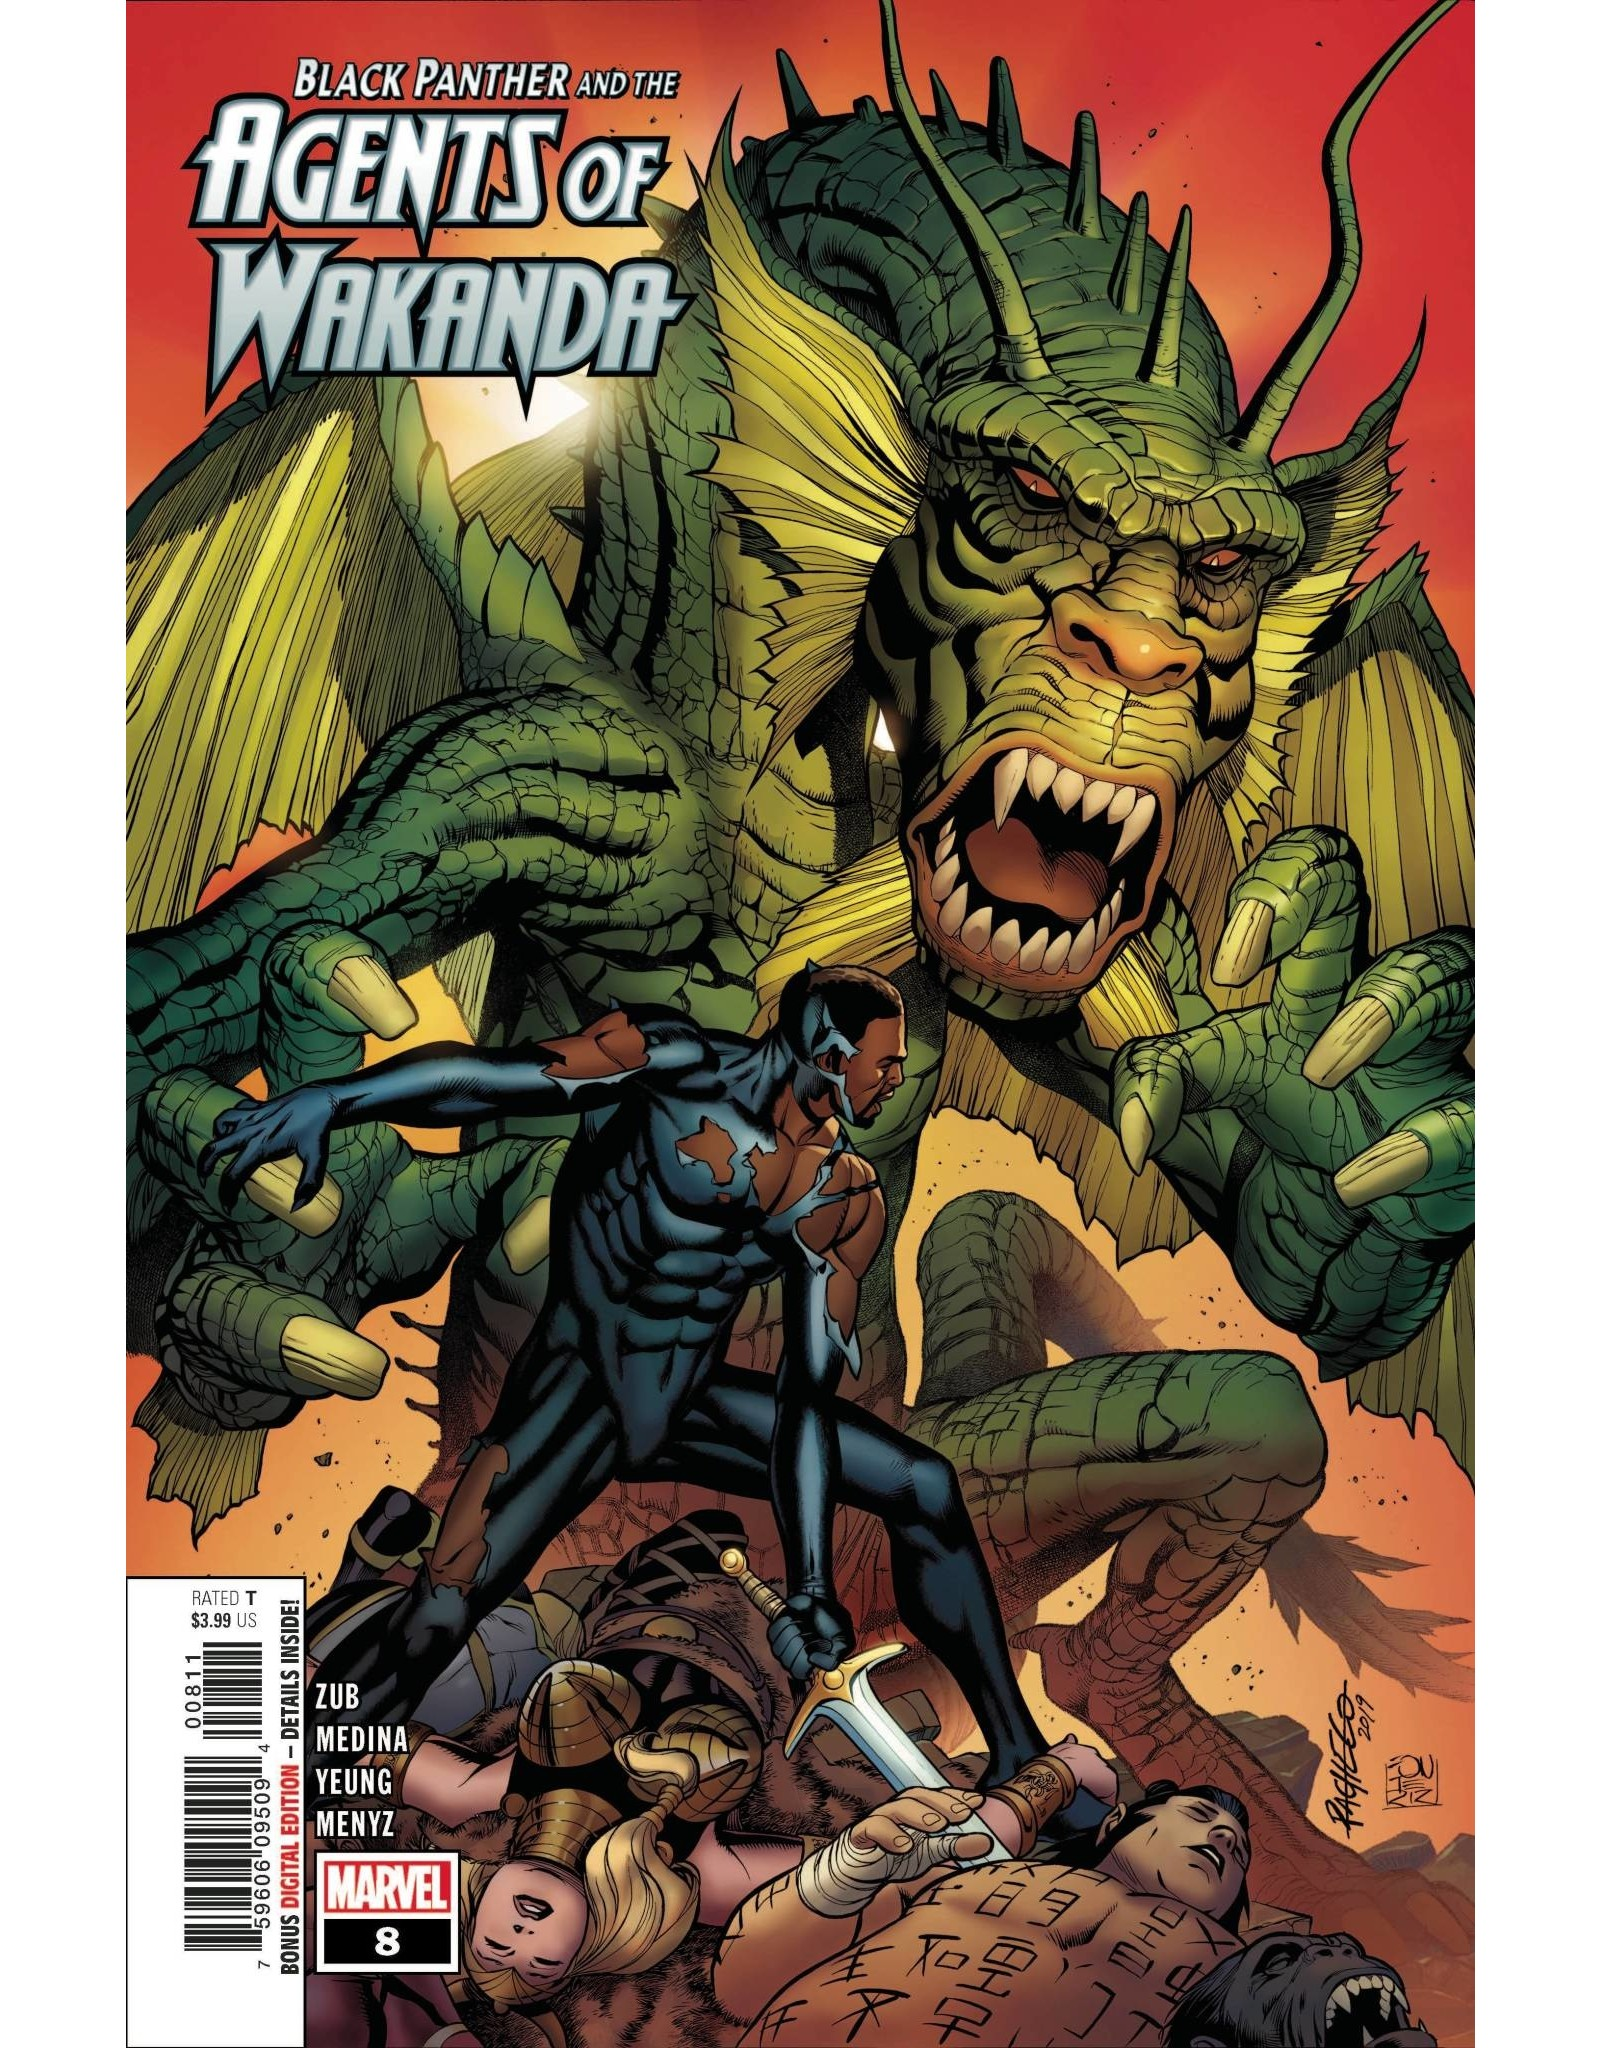 MARVEL COMICS BLACK PANTHER AND AGENTS OF WAKANDA #8